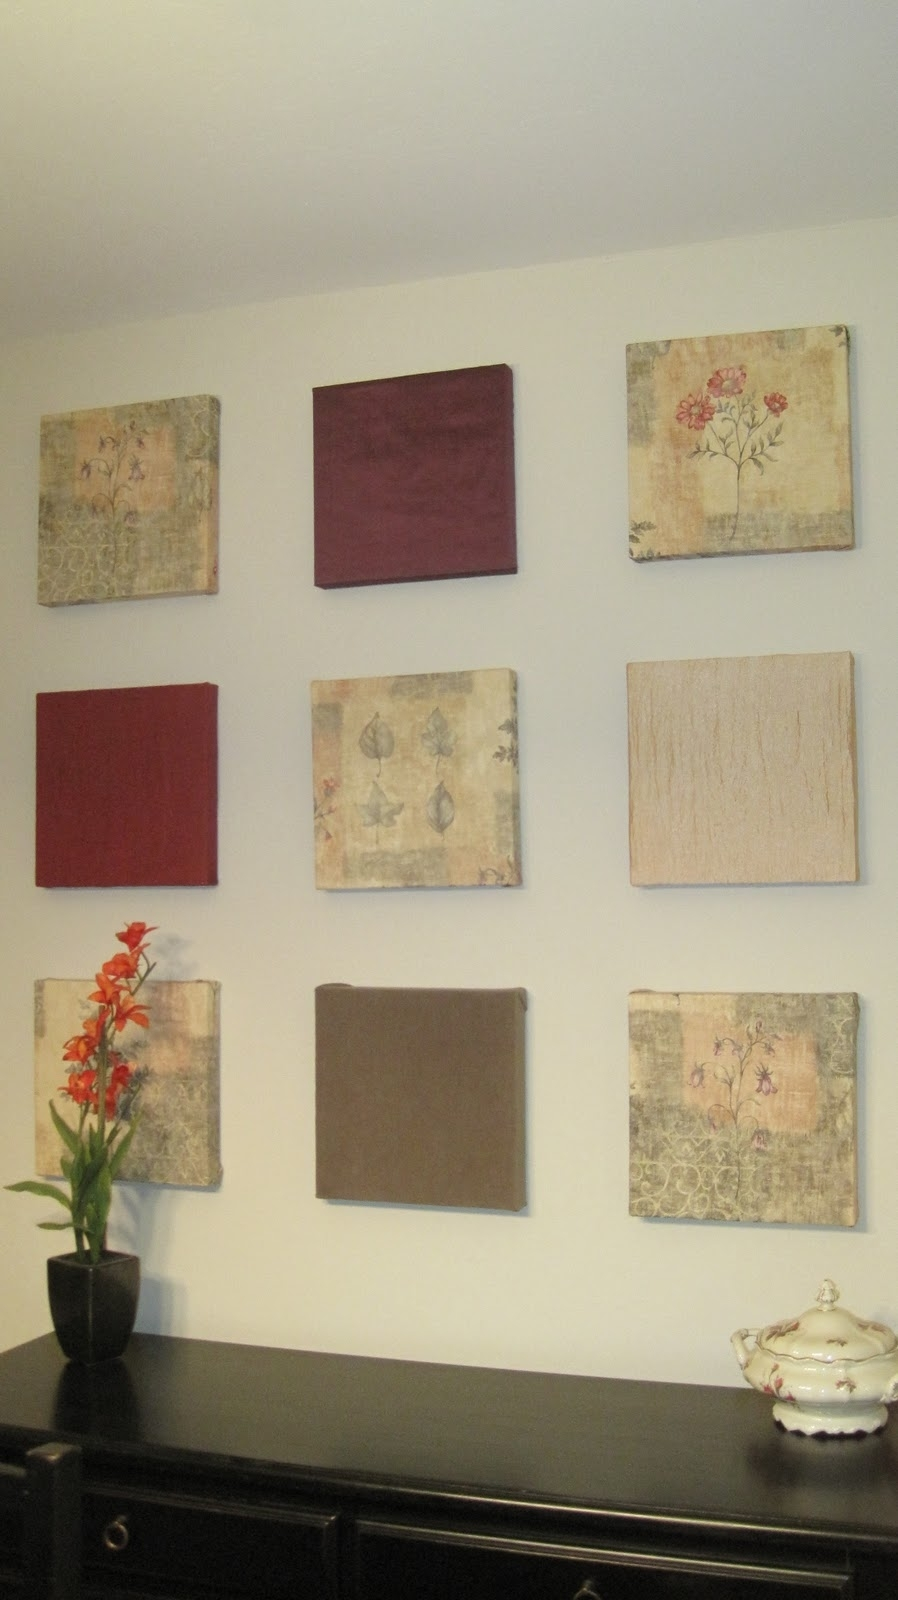 Whimsy Space: Wall Art Within Most Up To Date Fabric Square Wall Art (View 3 of 15)